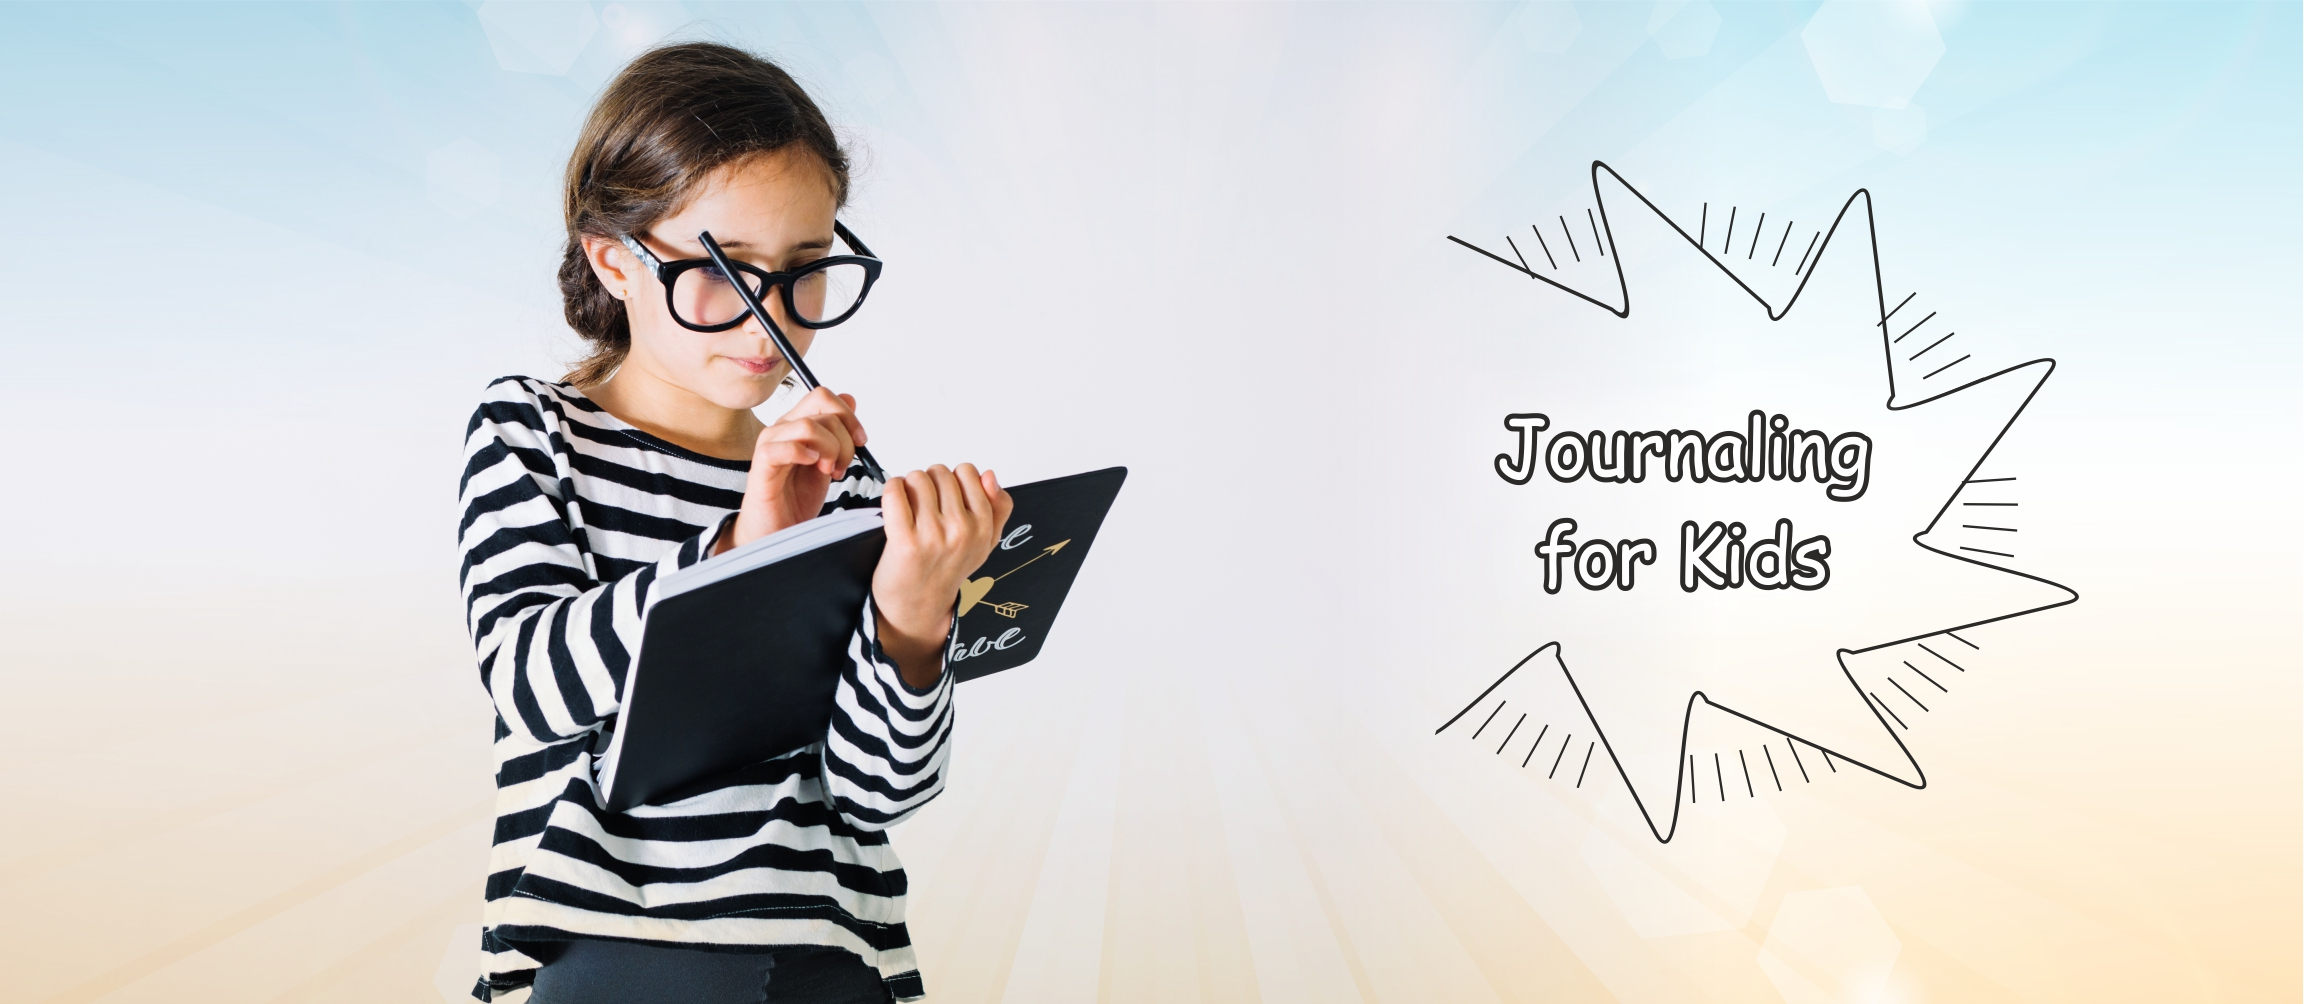 You are currently viewing Journaling for Kids